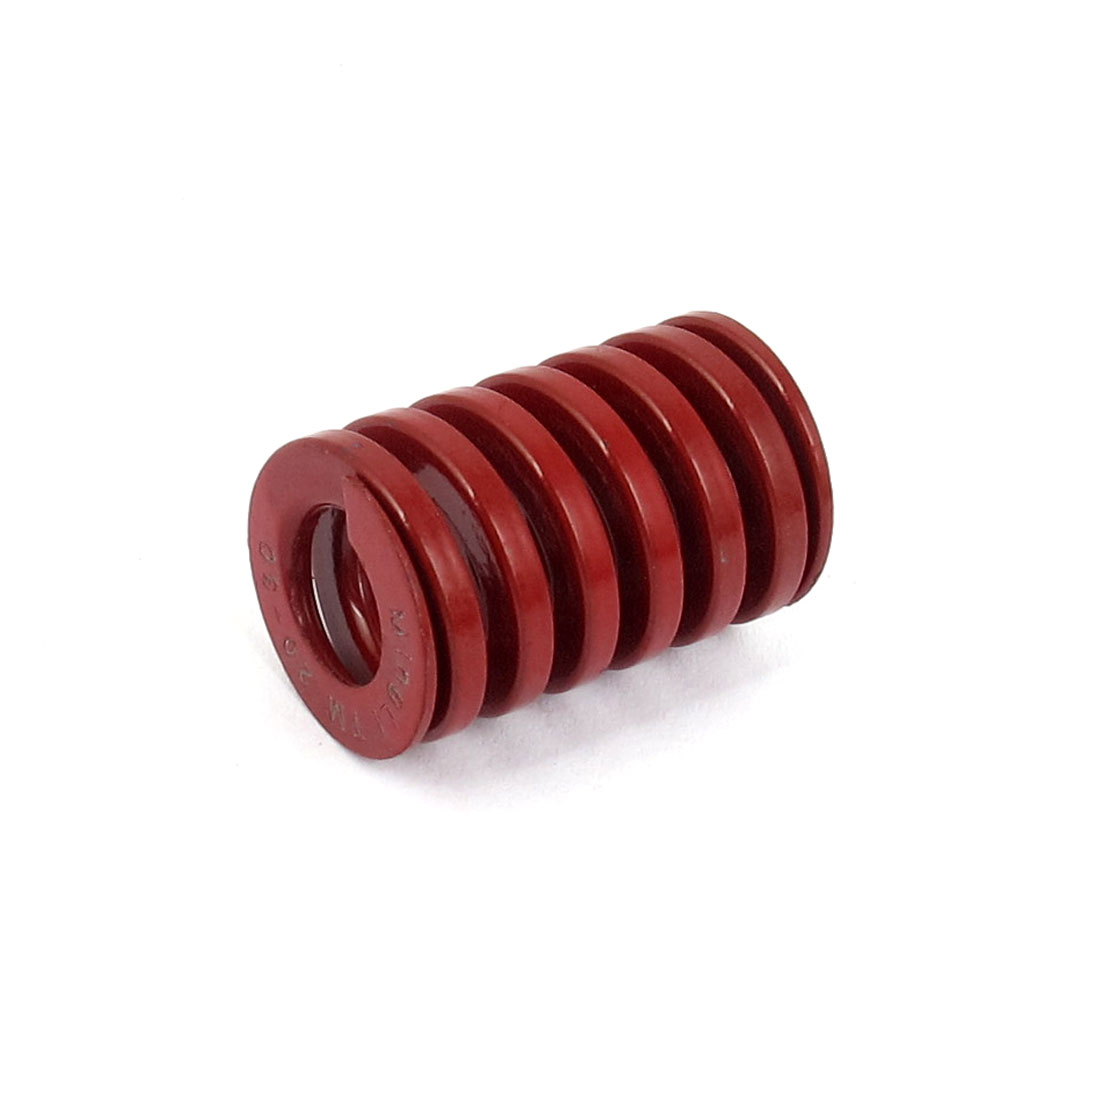 20mm OD 30mm Long Medium Load Spiral Stamping Compression Die Spring Red